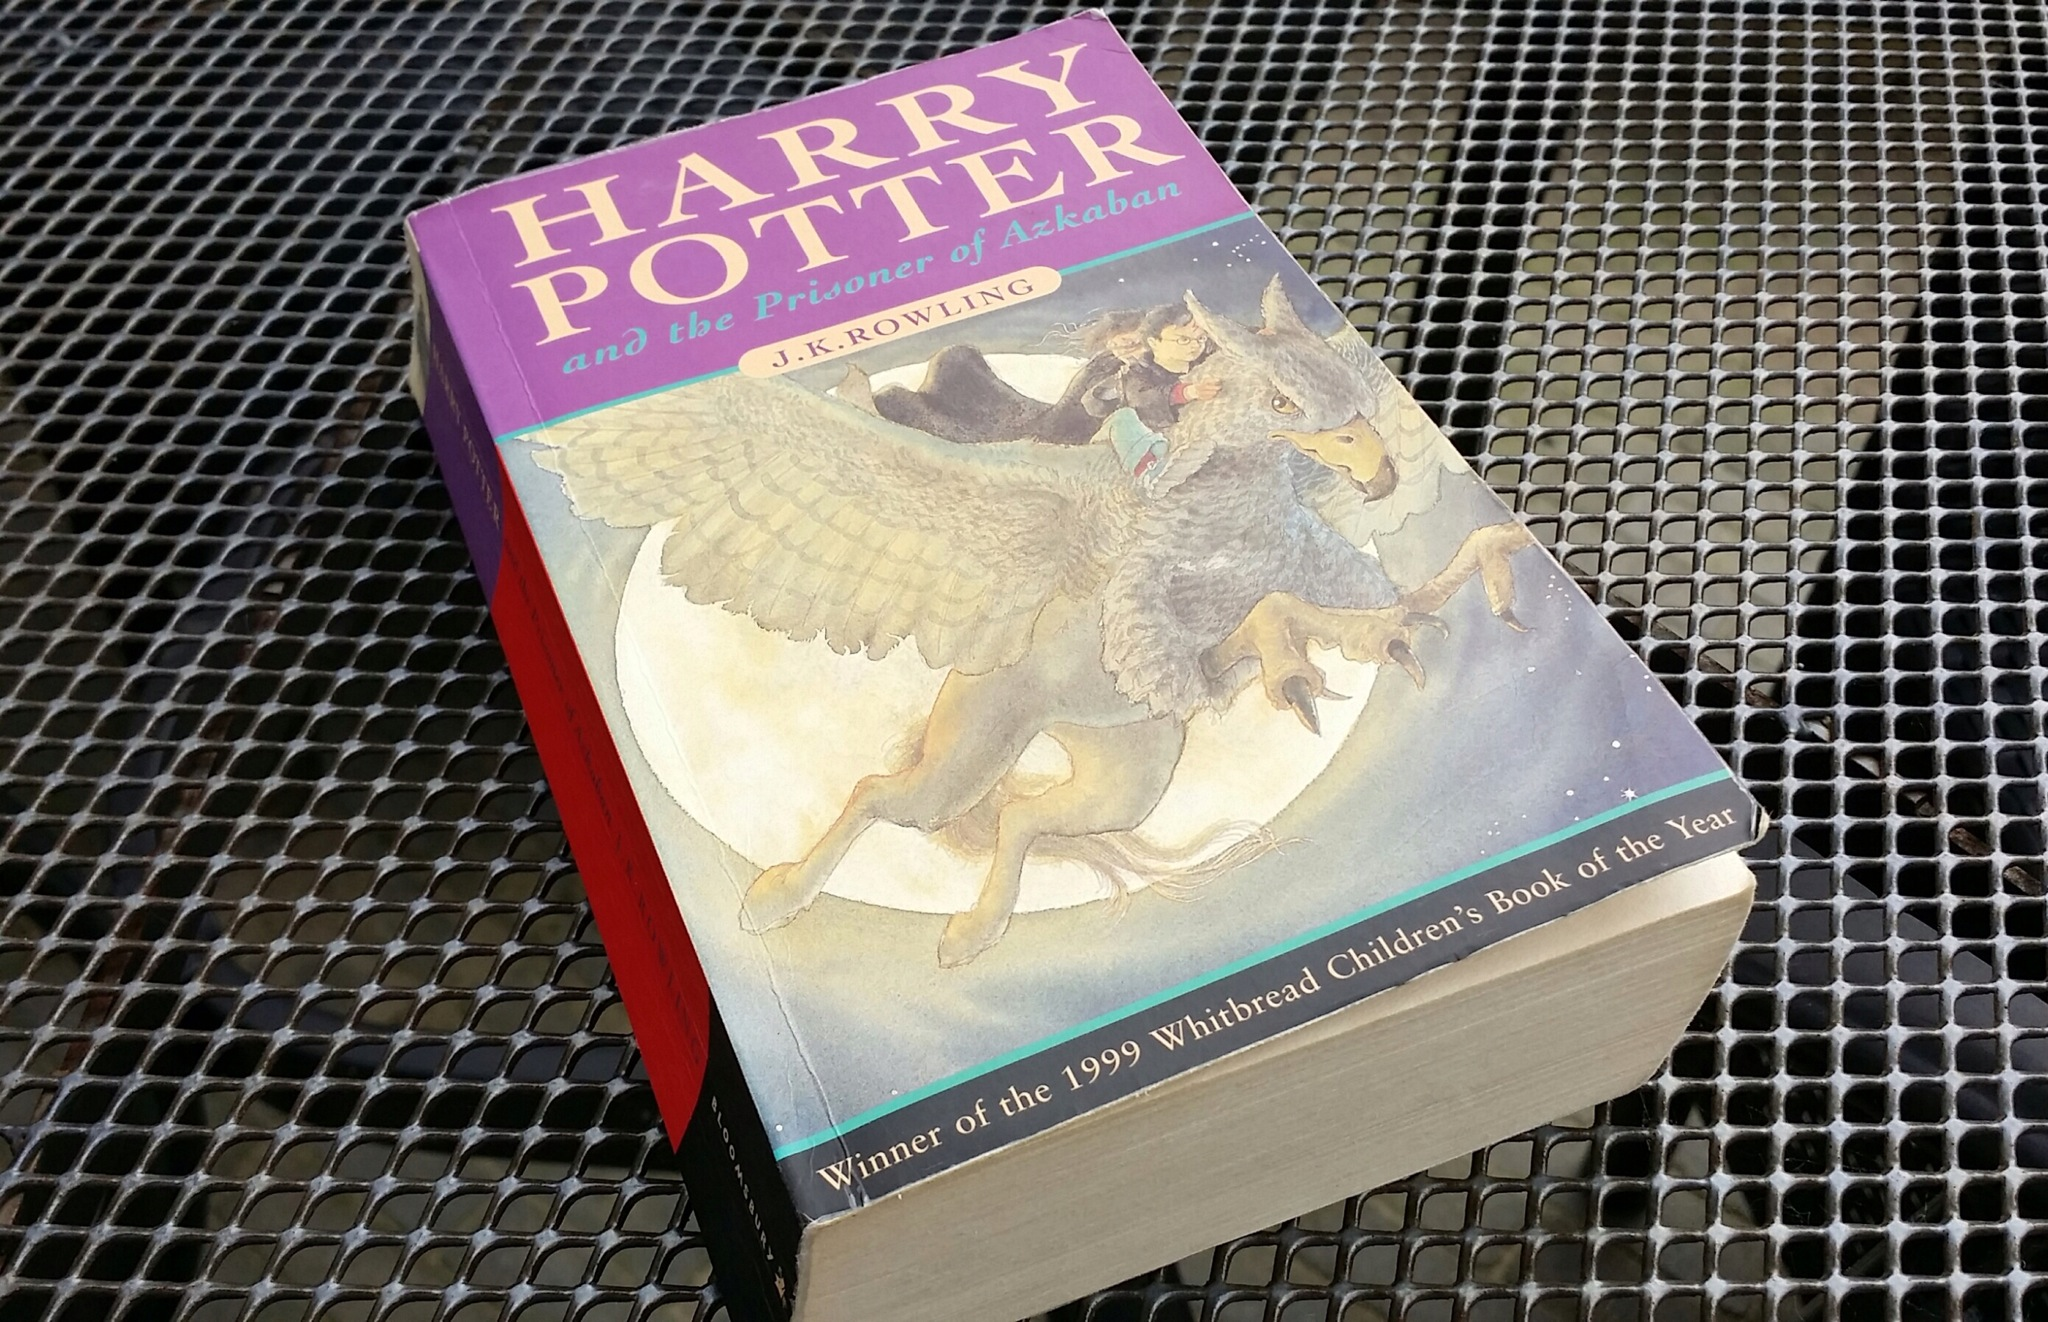 Tanya's 101 ~ Book No. 3 - Harry Potter and the Prisoner of Azkaban | J.K. Rowling | Book Review